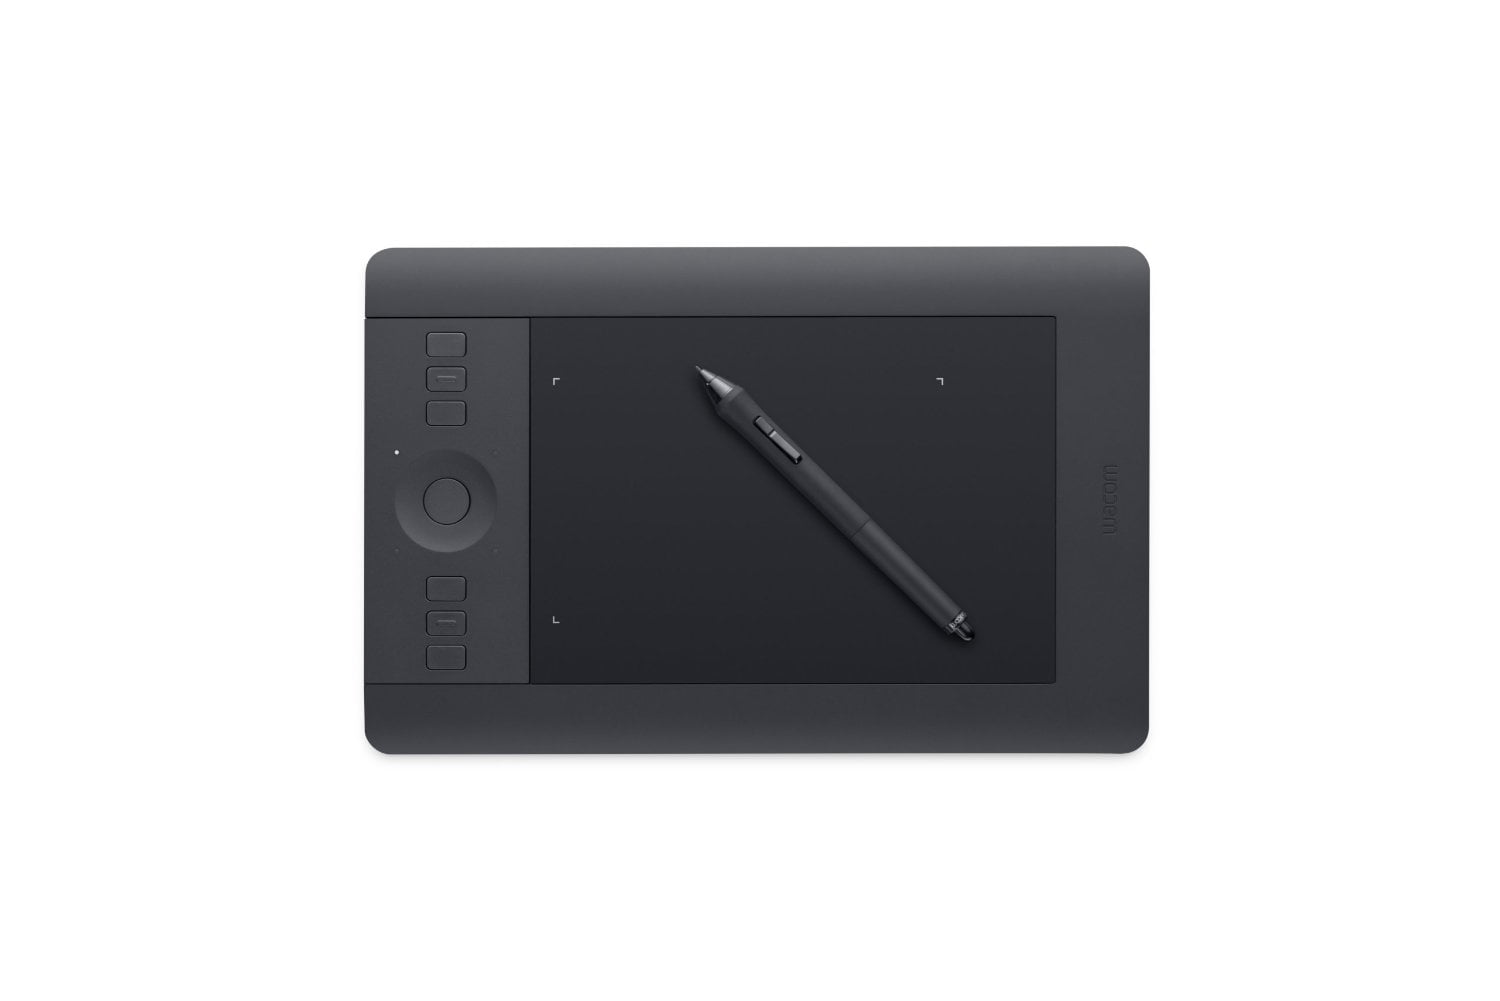 Fashionable Wacom Intuos Pro Pen Touch Wacom Intuos Pro Pen Touch Small Tablet Joy Makers Intuos Pen Touch Stylus Intuos Pen Touch Cable dpreview Intuos Pen And Touch